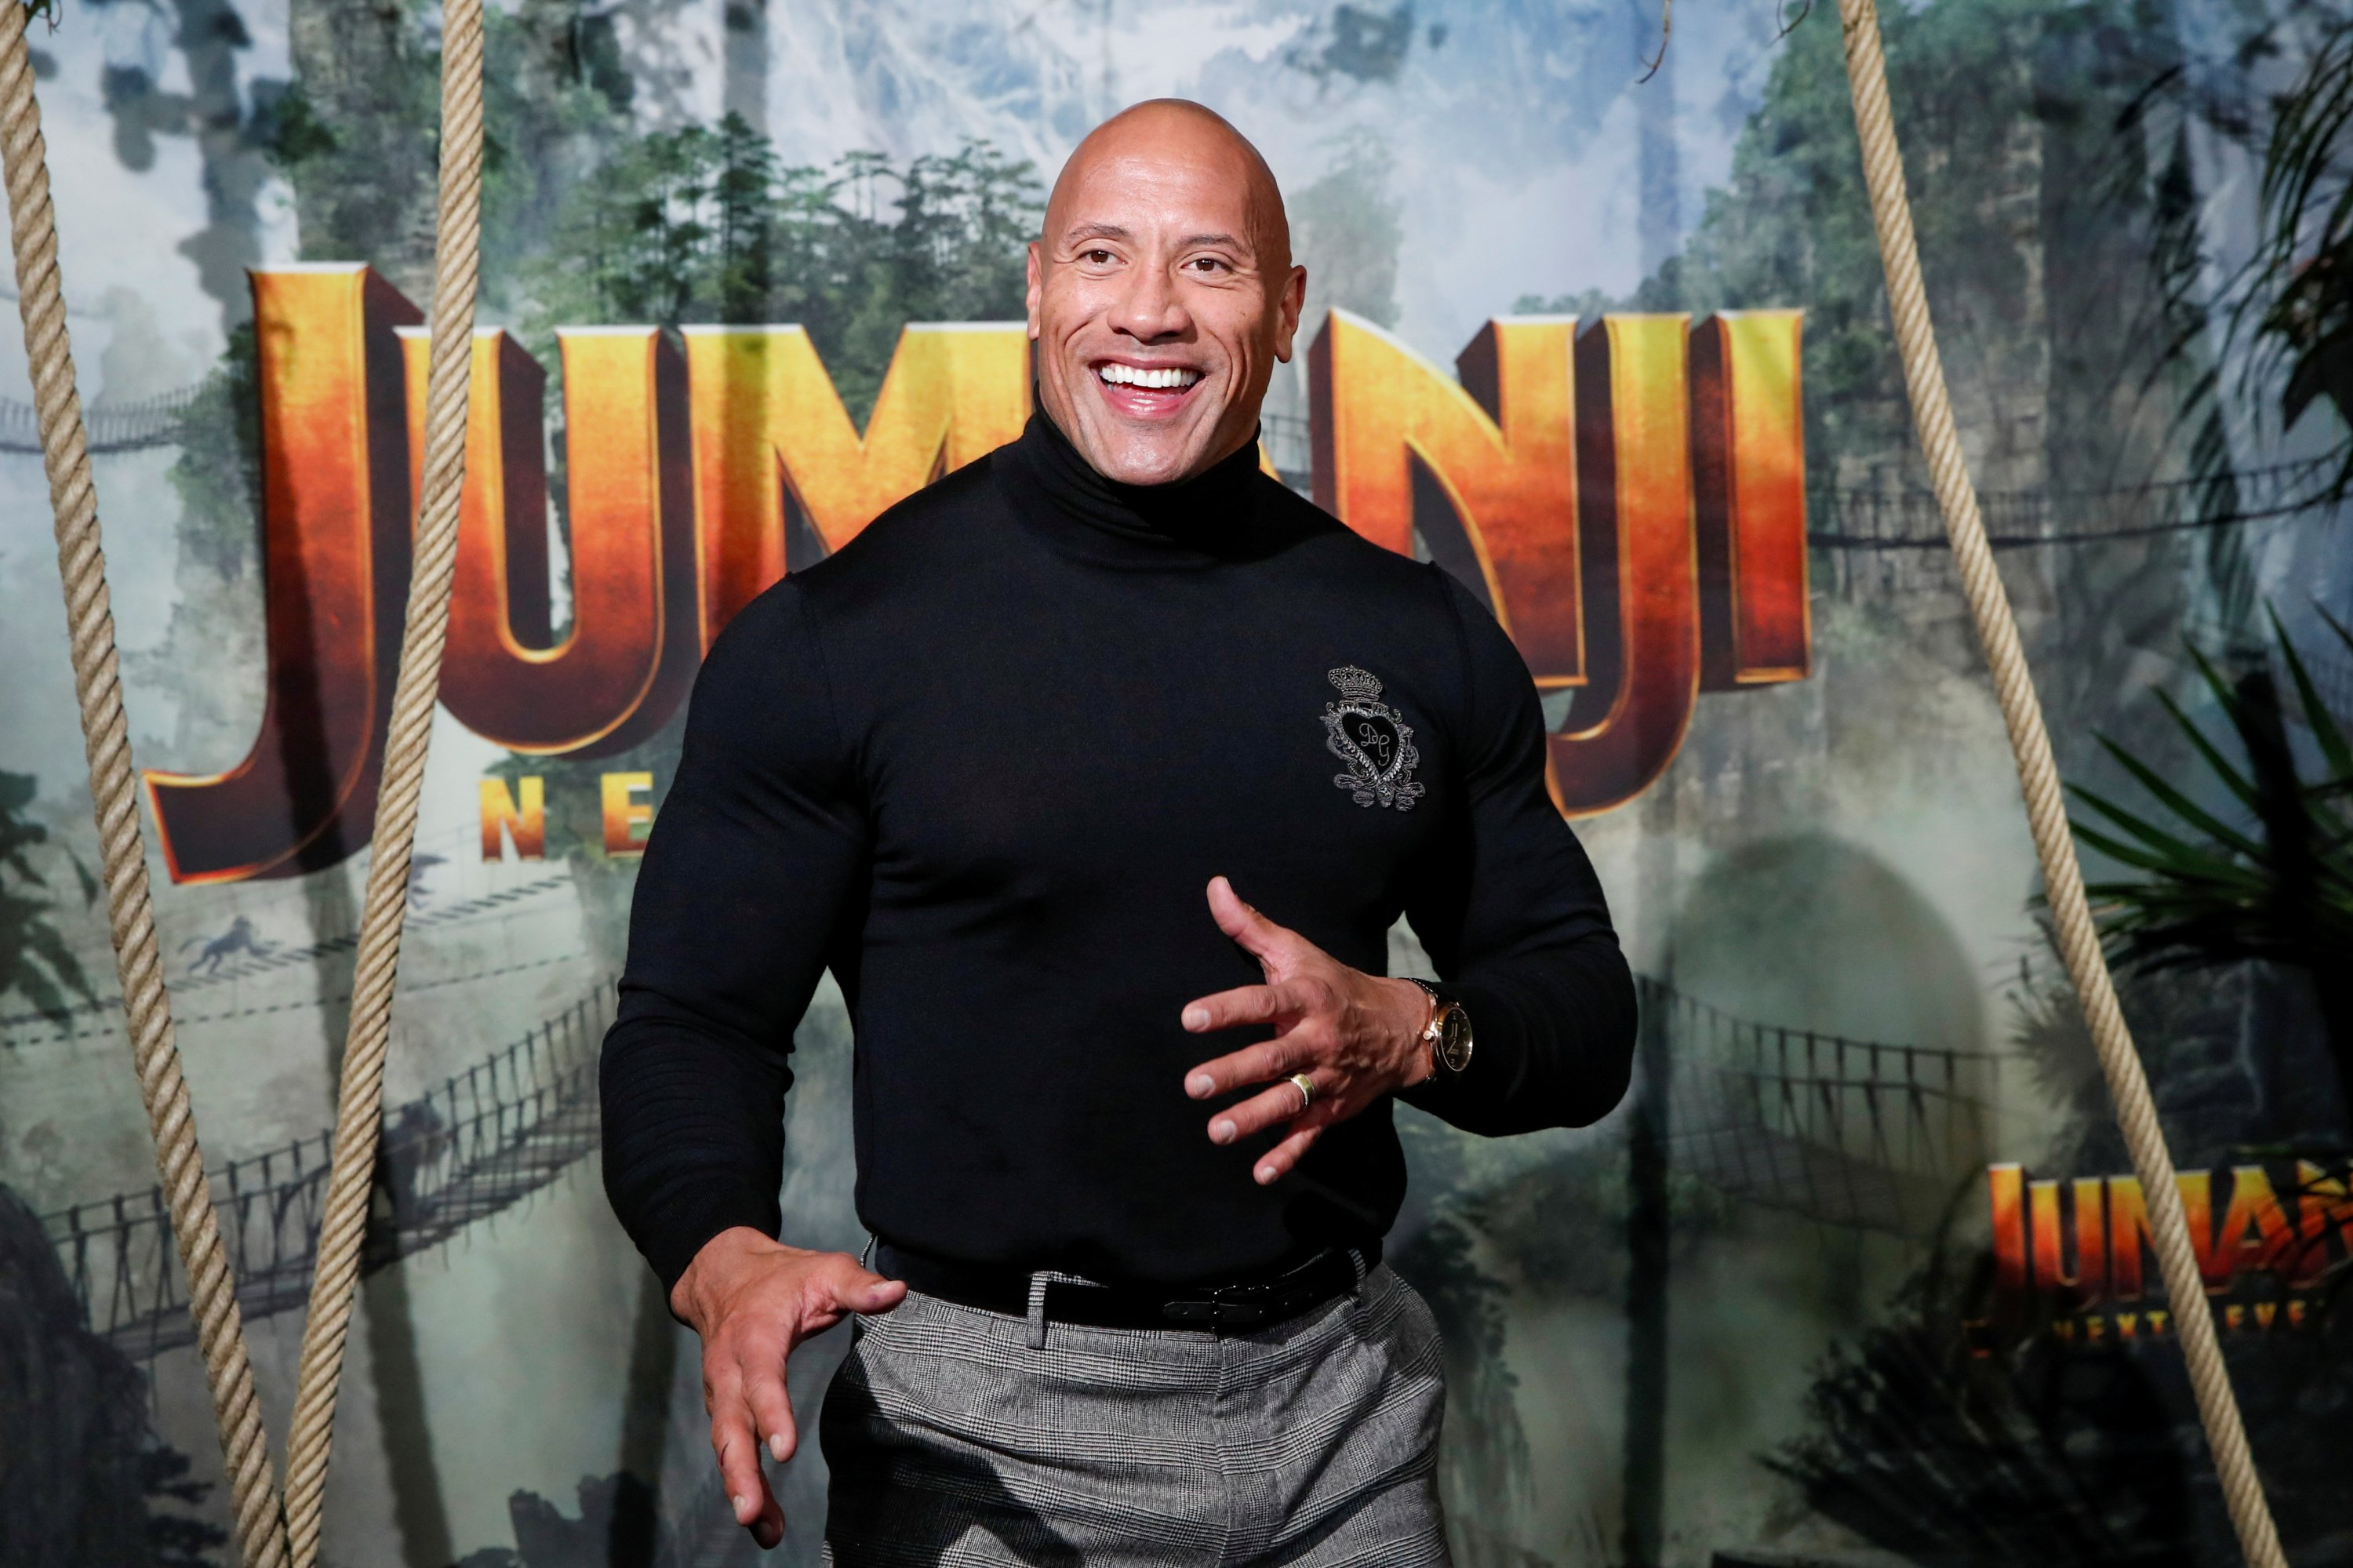 Cast member Dwayne Johnson attends the premiere of the movie 'Jumanji: The Next Level' at the Grand Rex in Paris, France, Dec. 3, 2019. (REUTERS Photo)